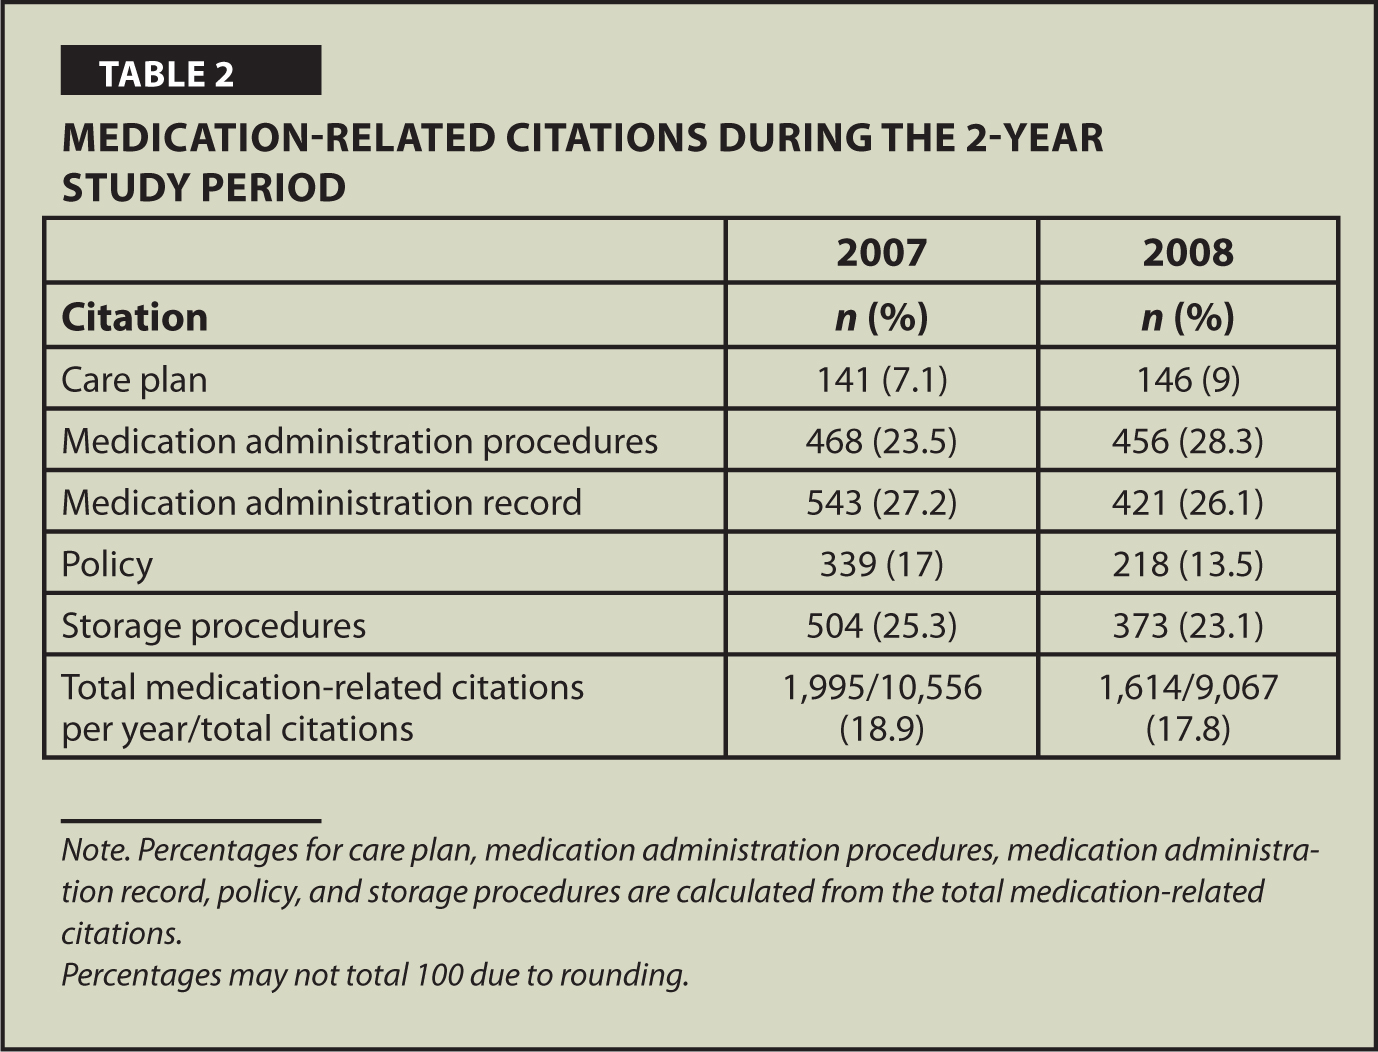 Medication-Related Citations During the 2-Year Study Period